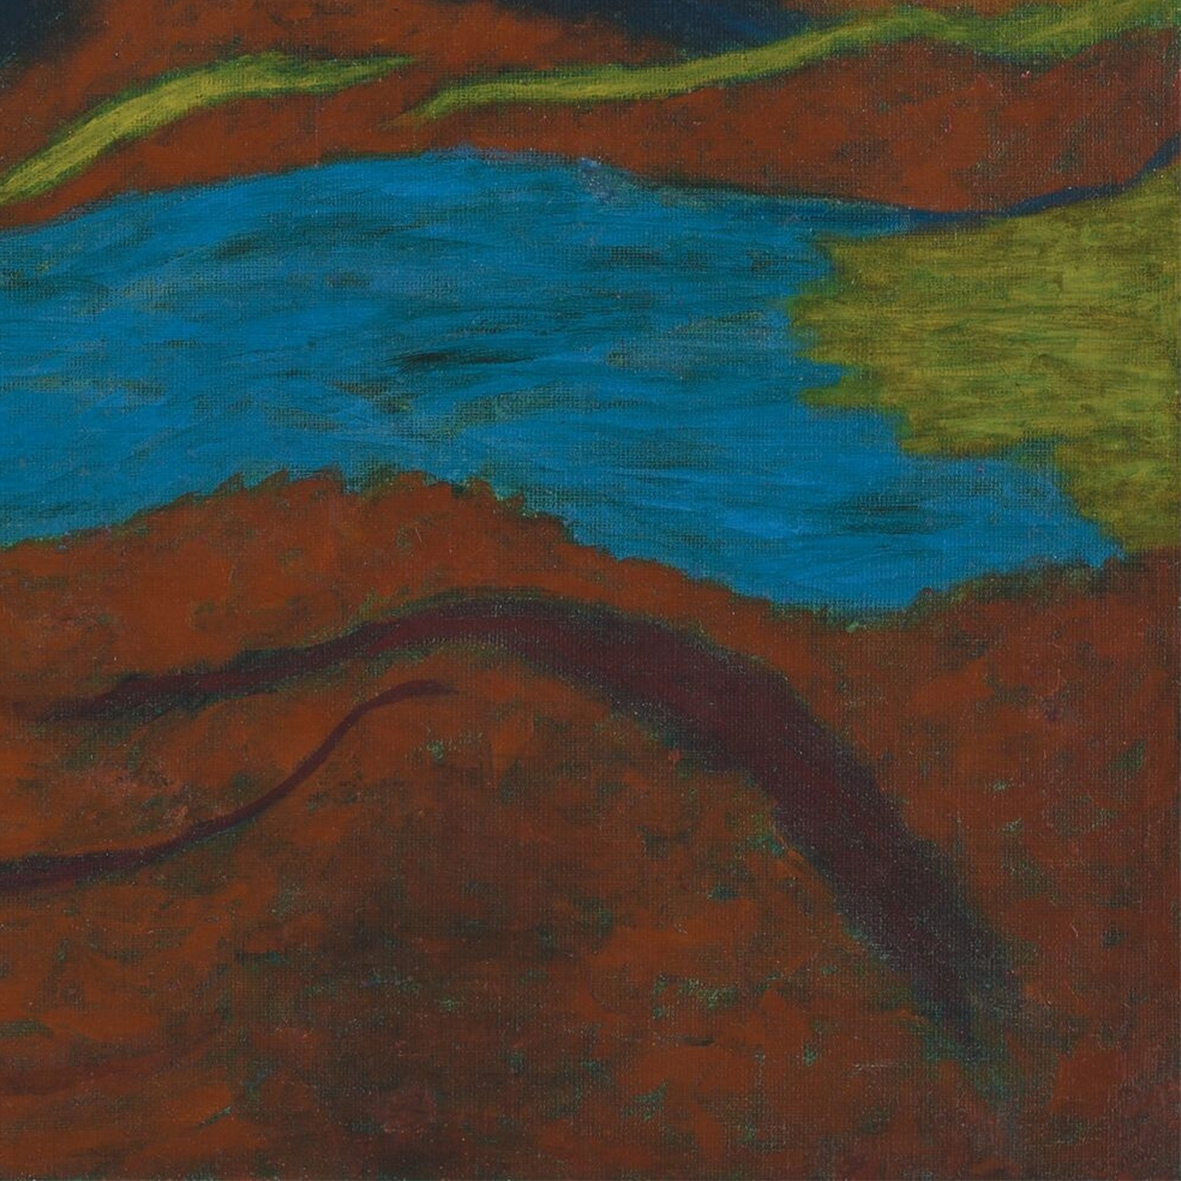 Nashar, Red Abstract, oil on canvas, 65 x 95 cm, 1974 (detail)